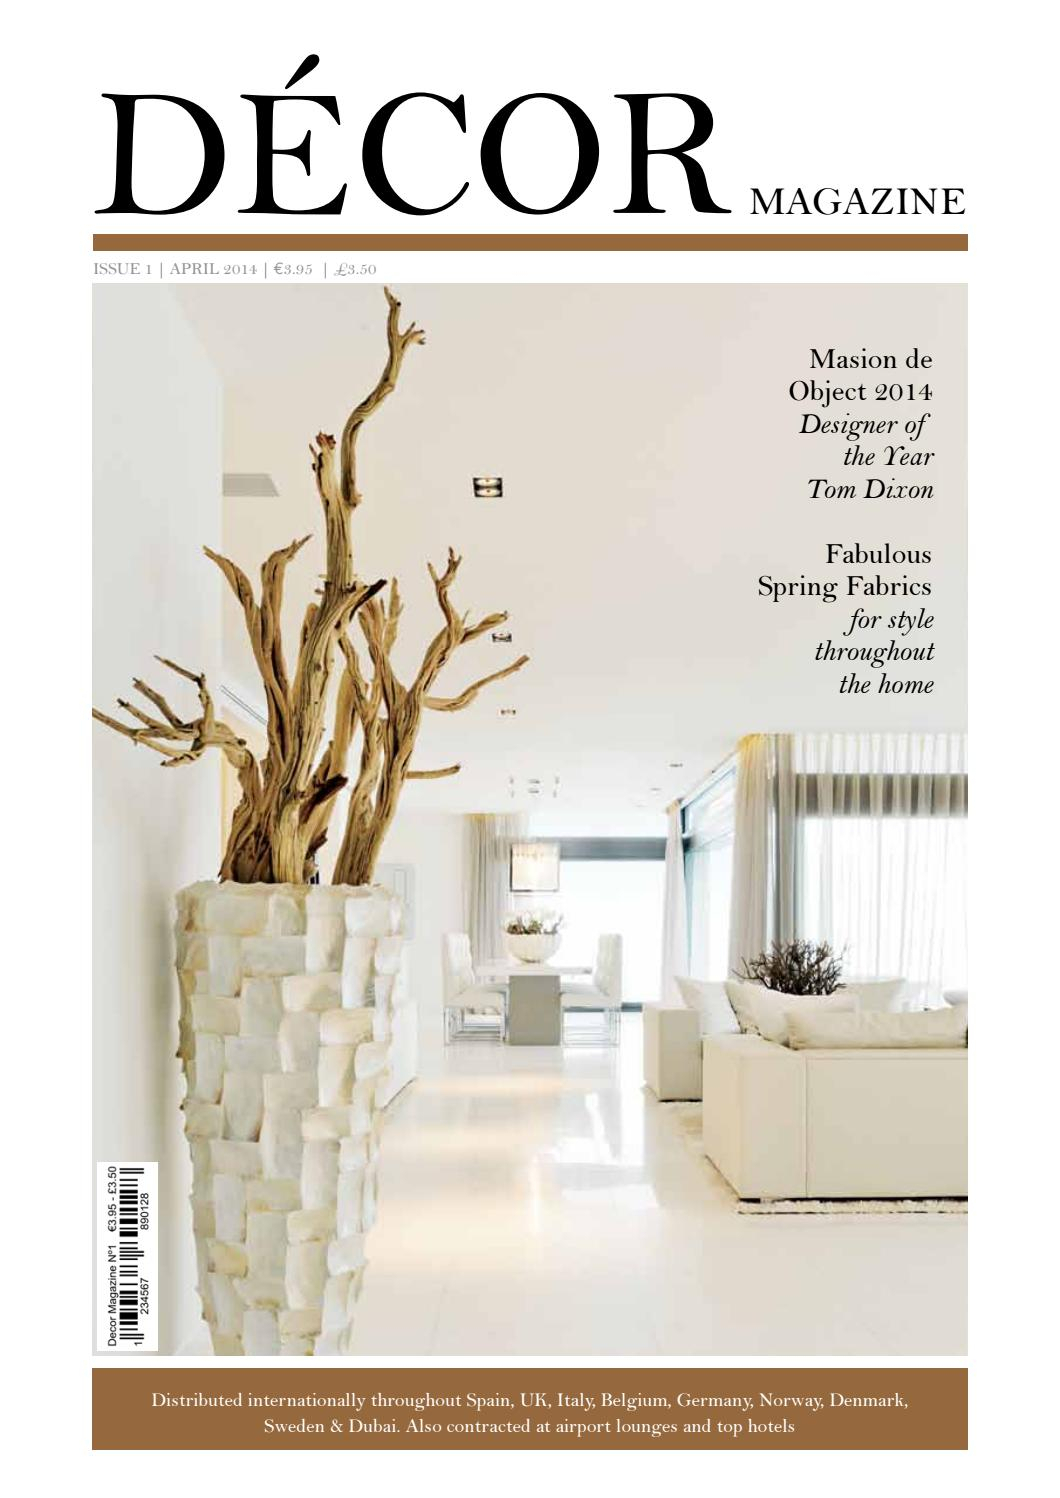 Decor Magazinebillions Luxury Portal – Issuu Regarding Arminta Wood Sideboards (Gallery 20 of 30)